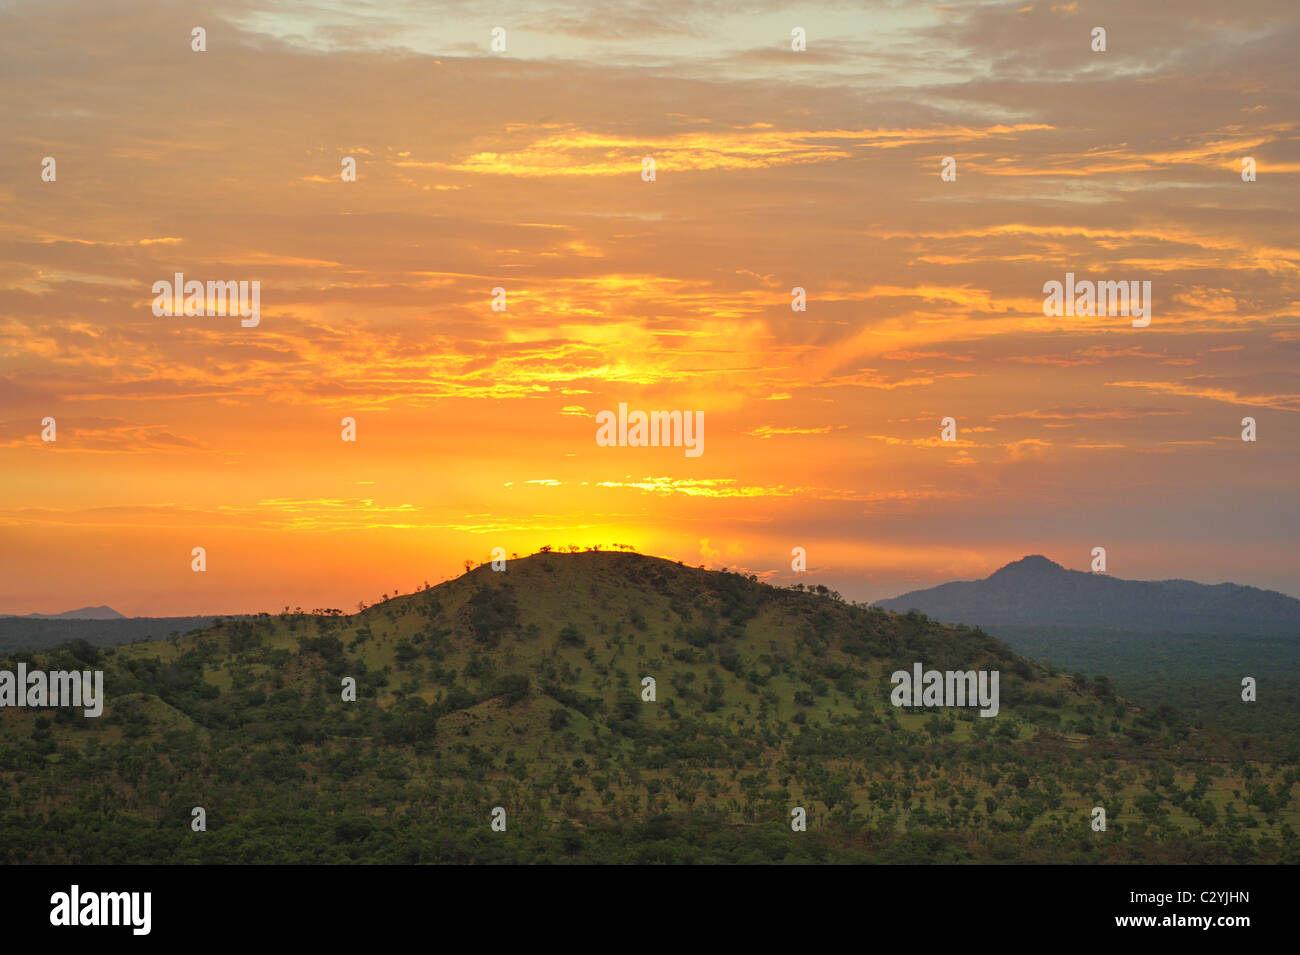 Sunset over hills of Boma National Park, South Sudan - Stock Image